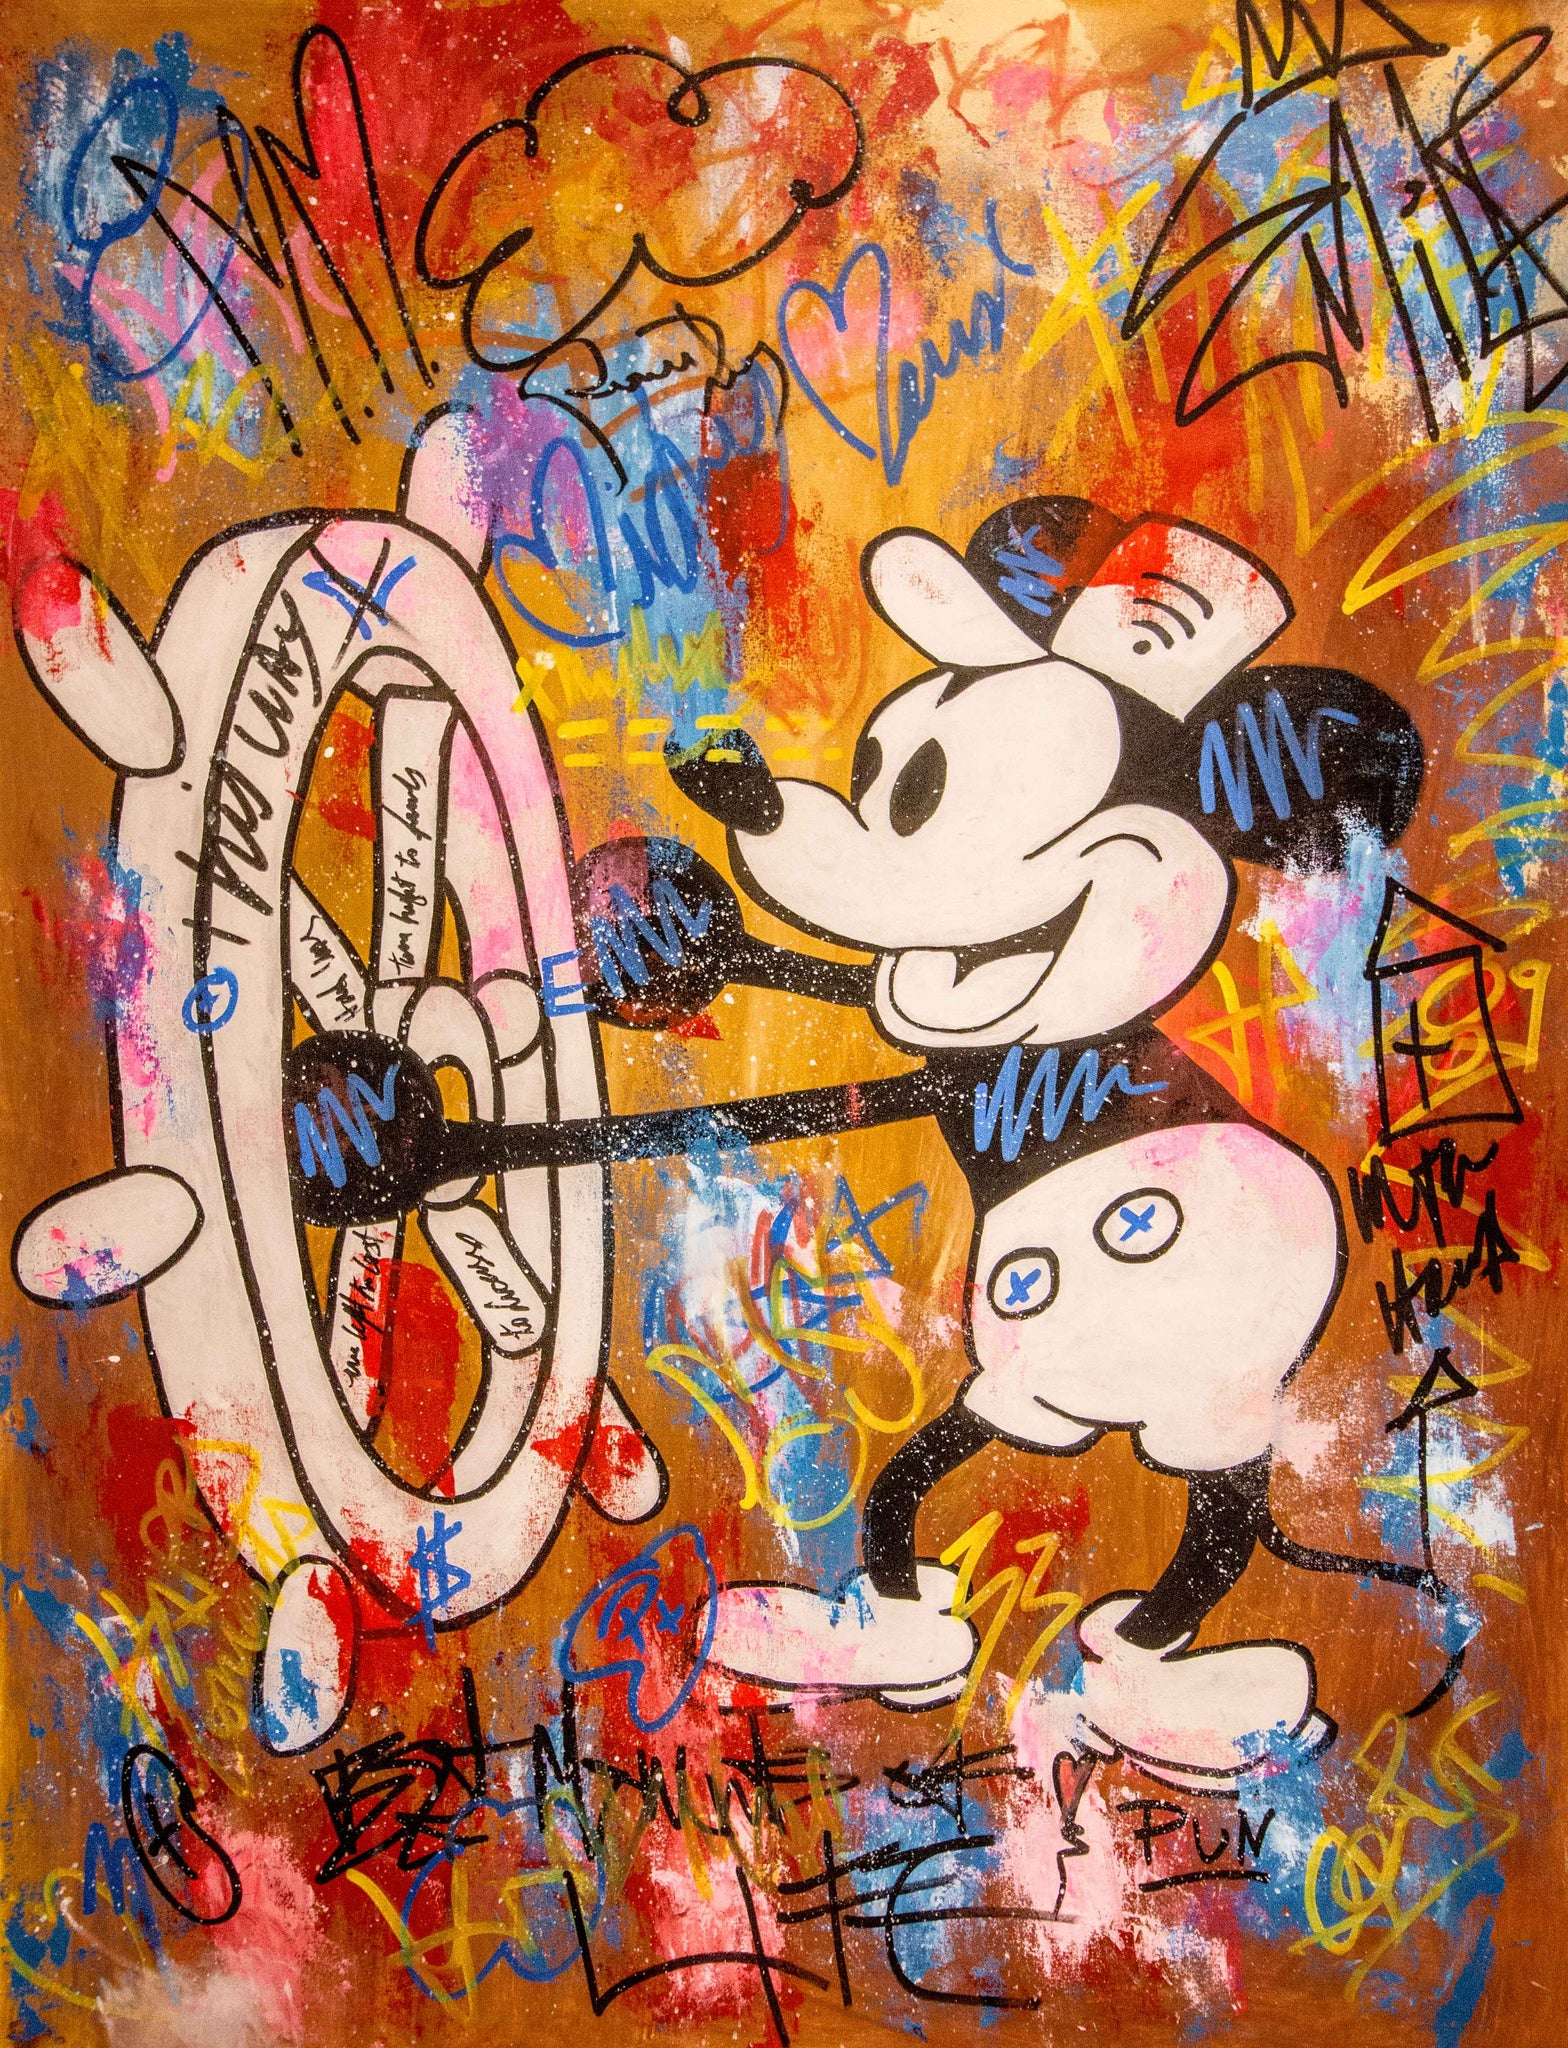 Sold - Old Mickey Mouse Sailing- 150x110cm - Free Shipping - Street Art by Carlos Pun